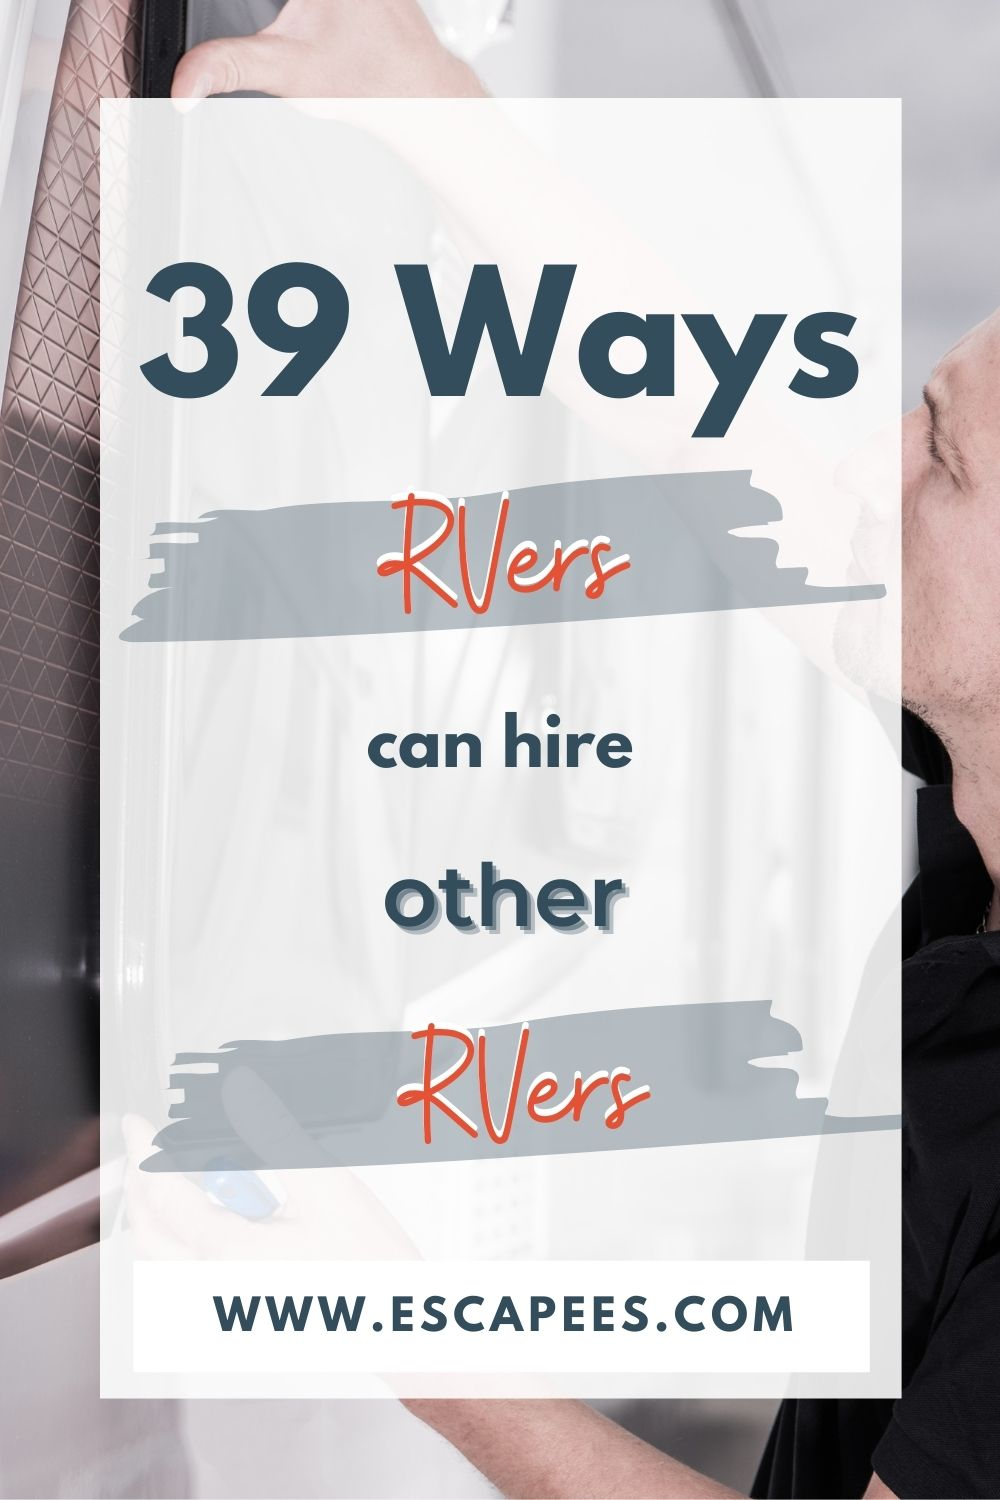 RVers Hire Other RVers Pinterest image